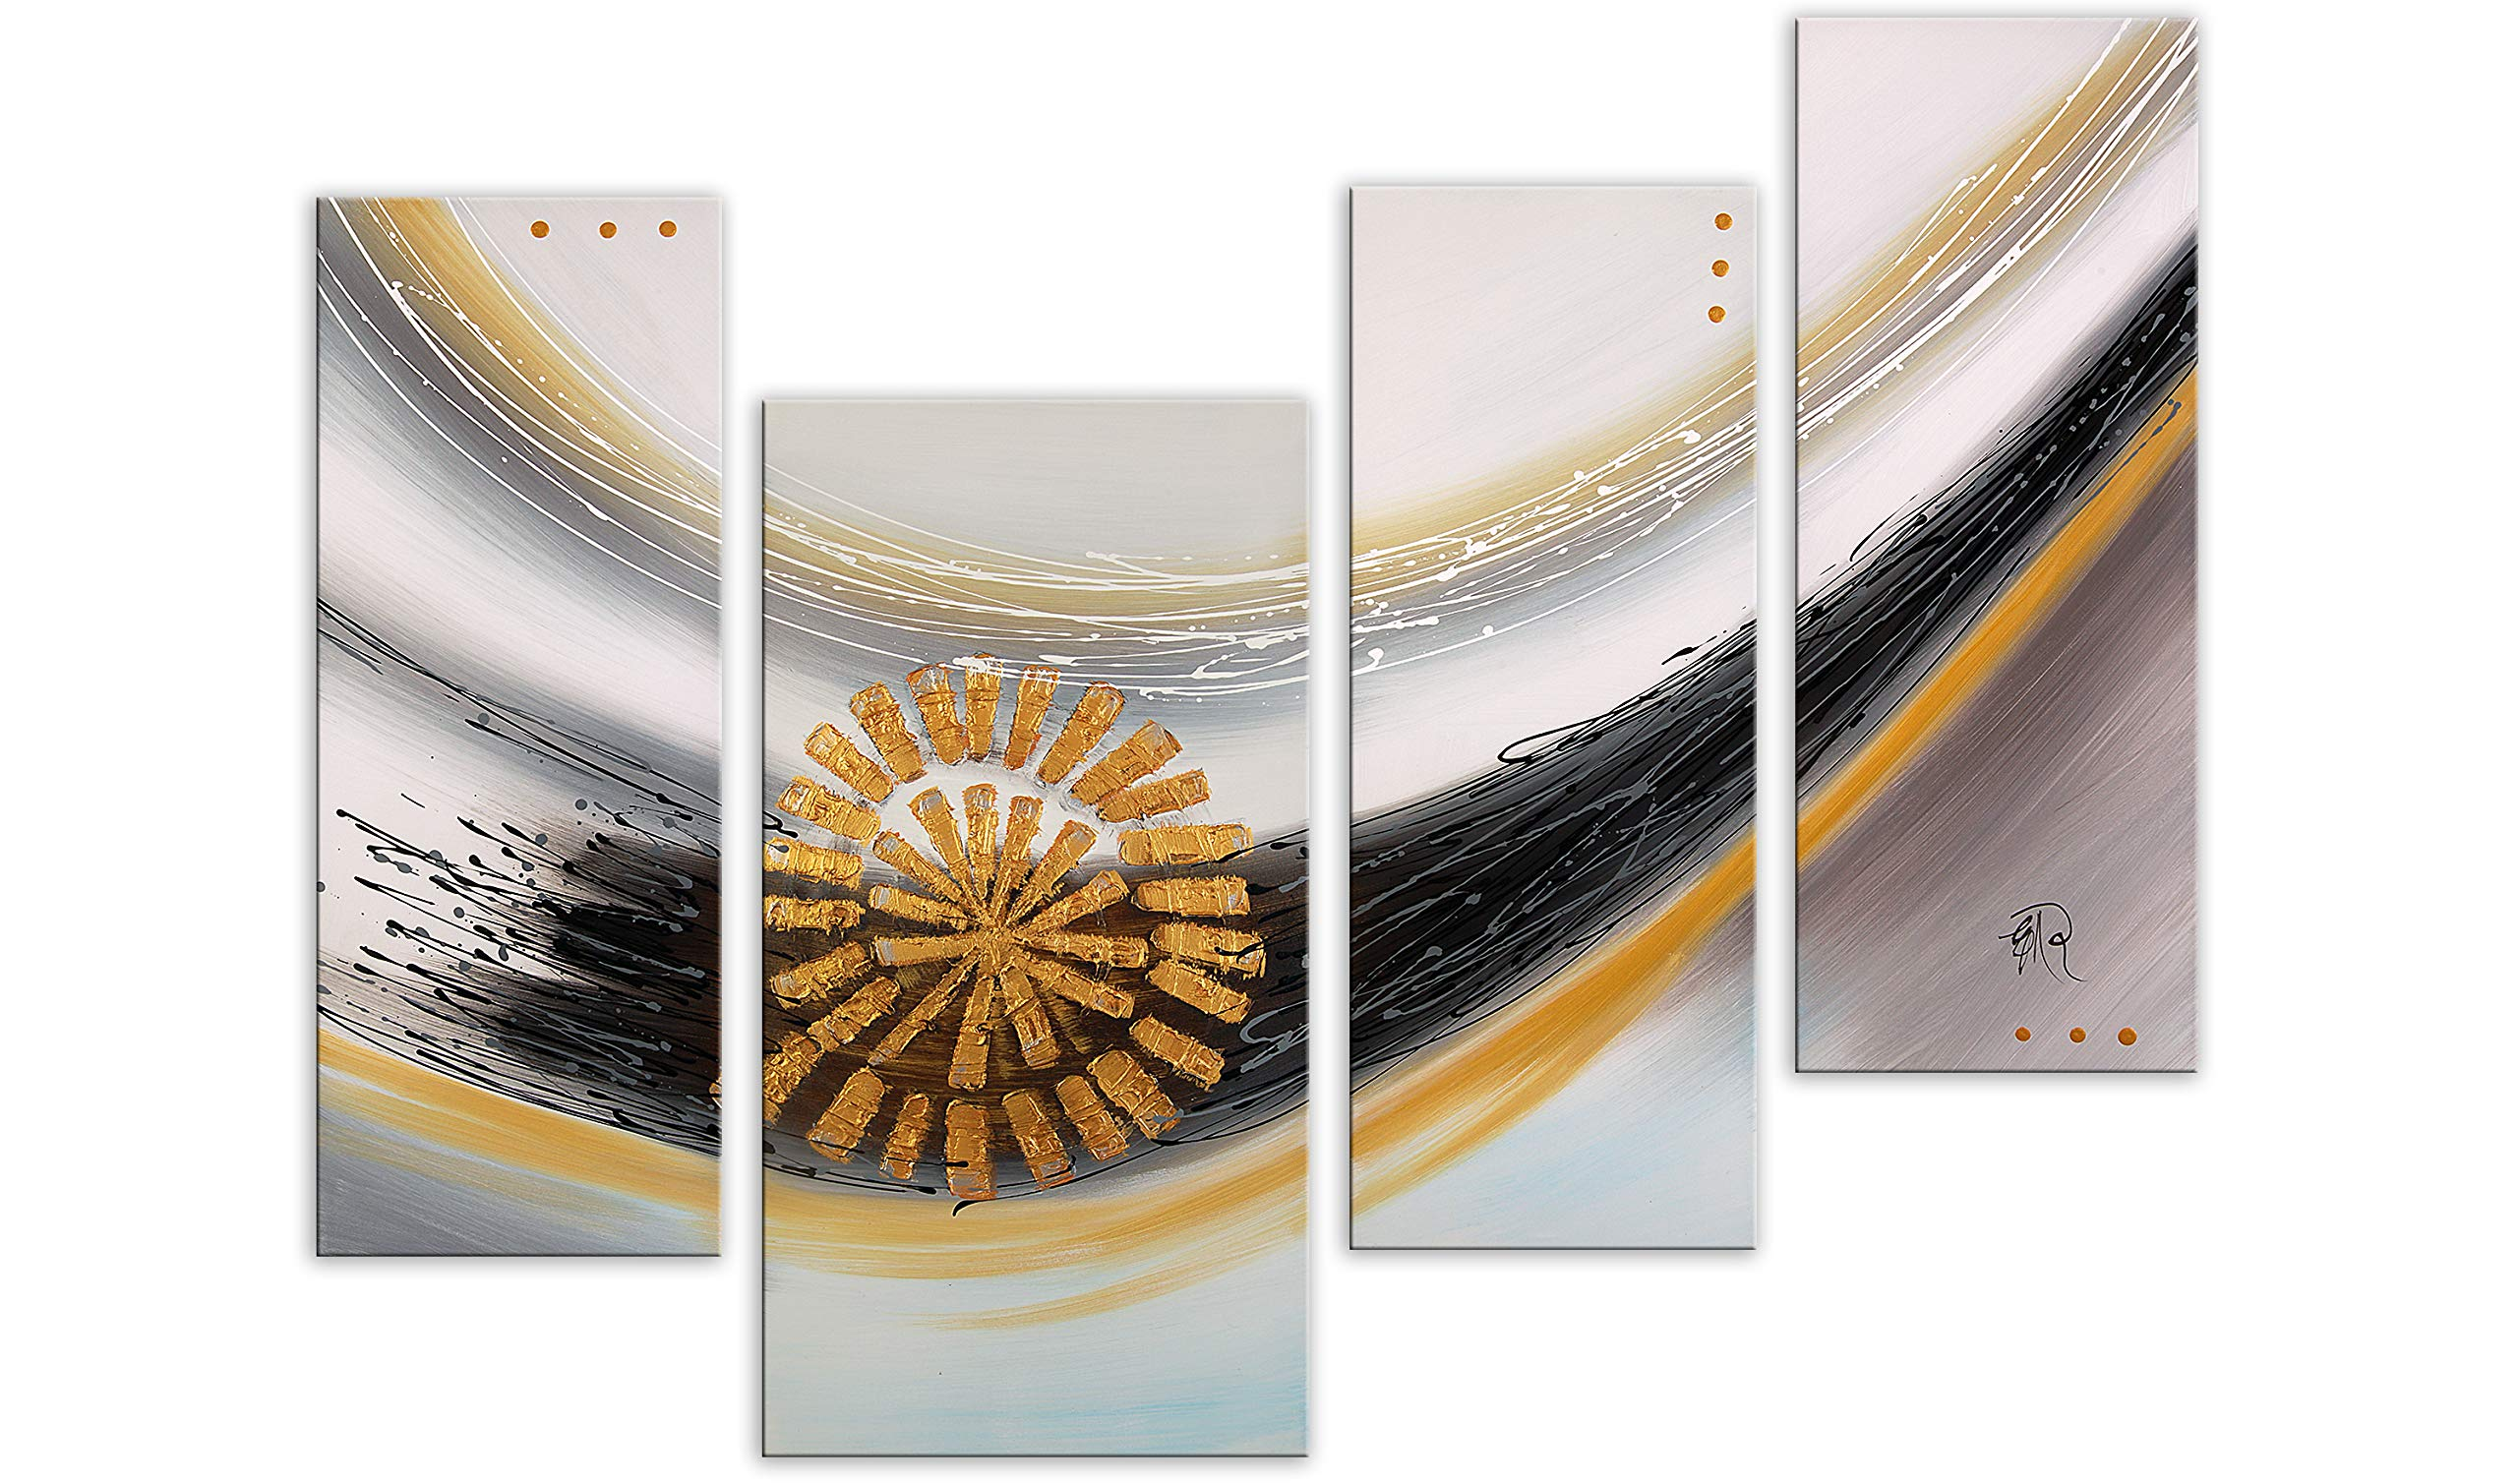 World Art TW60163 Aesthetic Wooden Frame Abstract, 120x130x3 cm, Size: 48 x 52 x 2 Inch